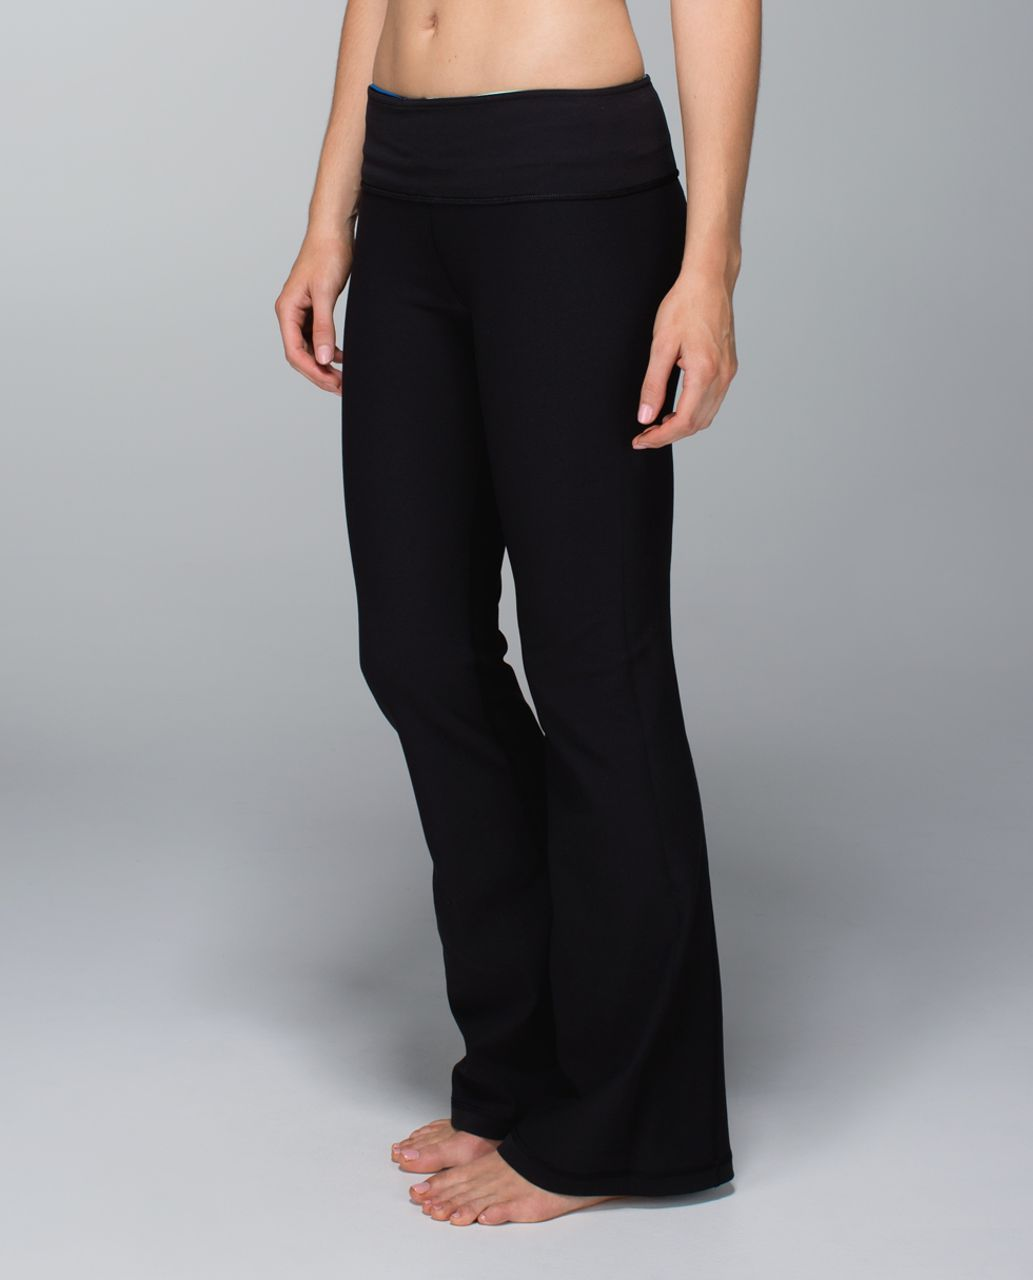 Lululemon Groove Pant (Tall) *Full-On Luon - Black / Quilt Winter 13-18